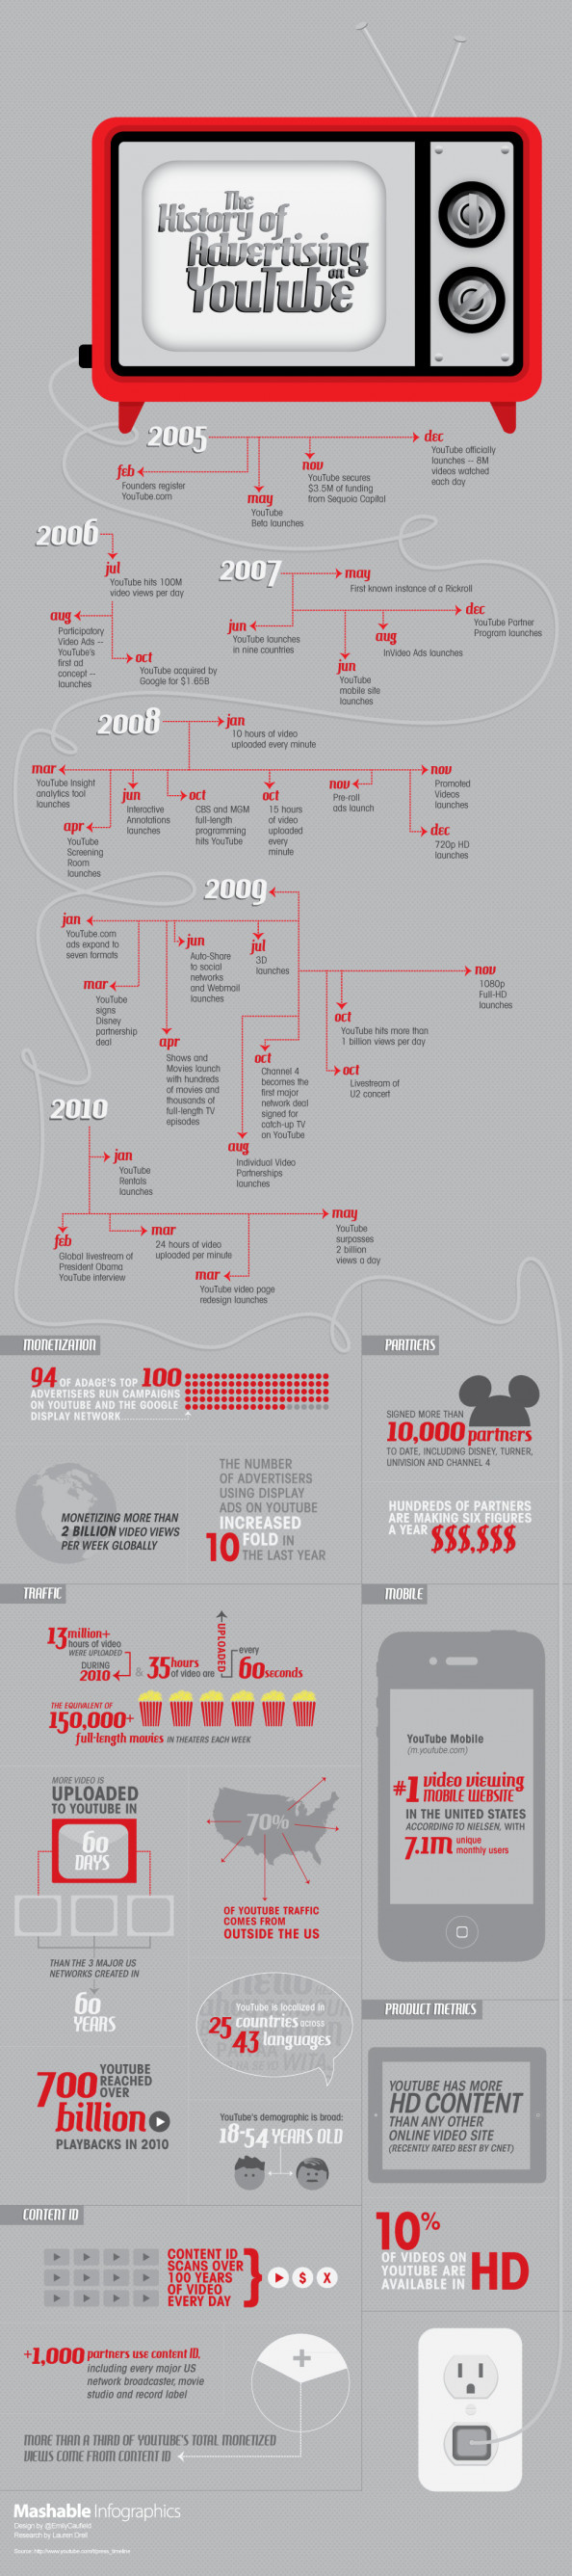 The History of Advertising on YouTube Infographic